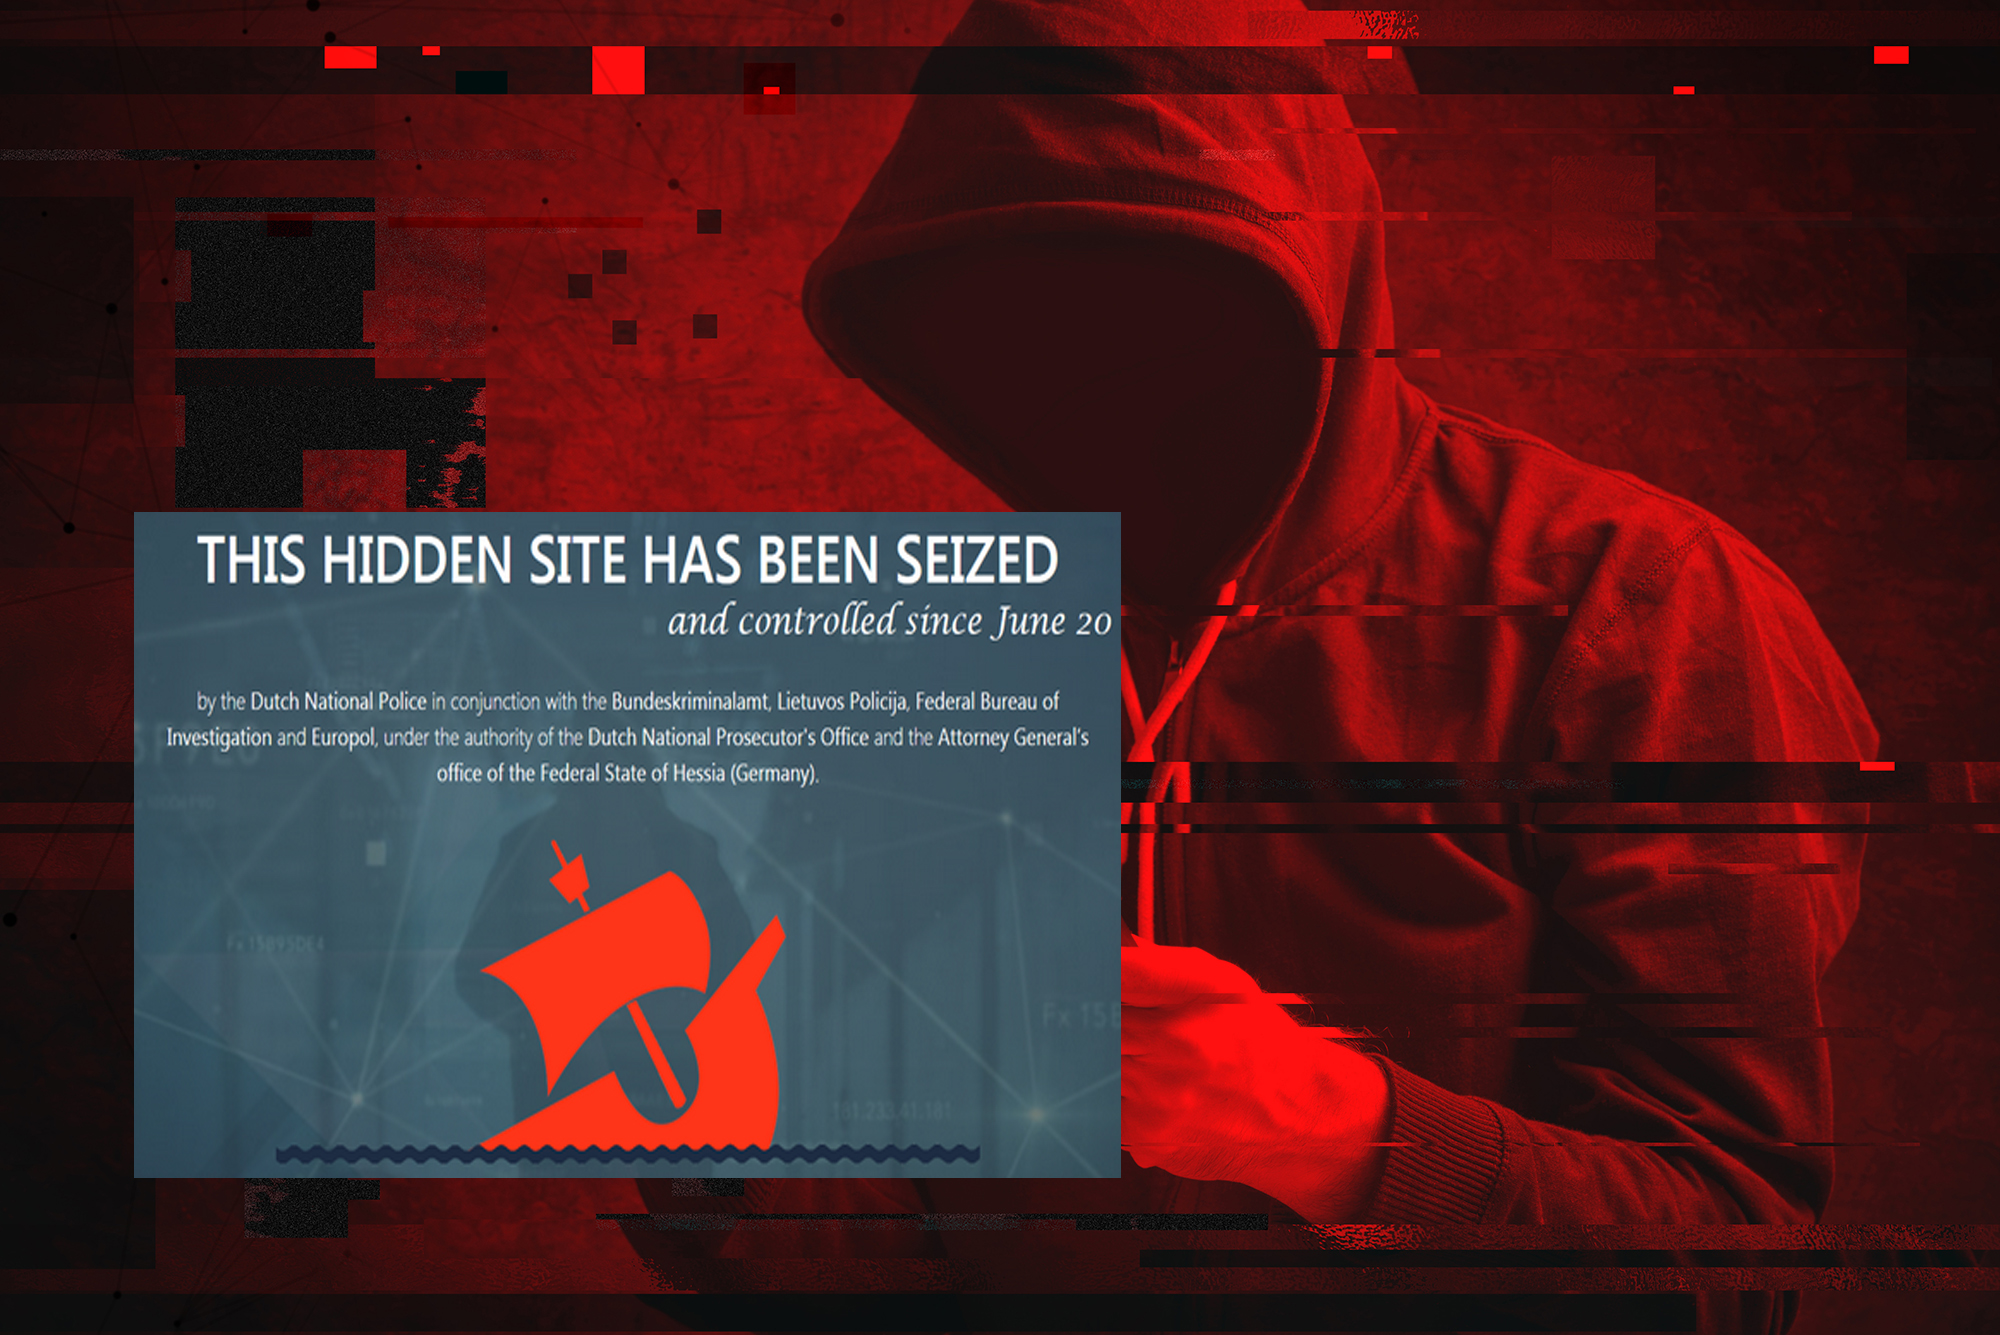 motherboard.vice.com - US, Europol, and Netherlands Announce Shutdowns of Two Massive Dark Web Markets